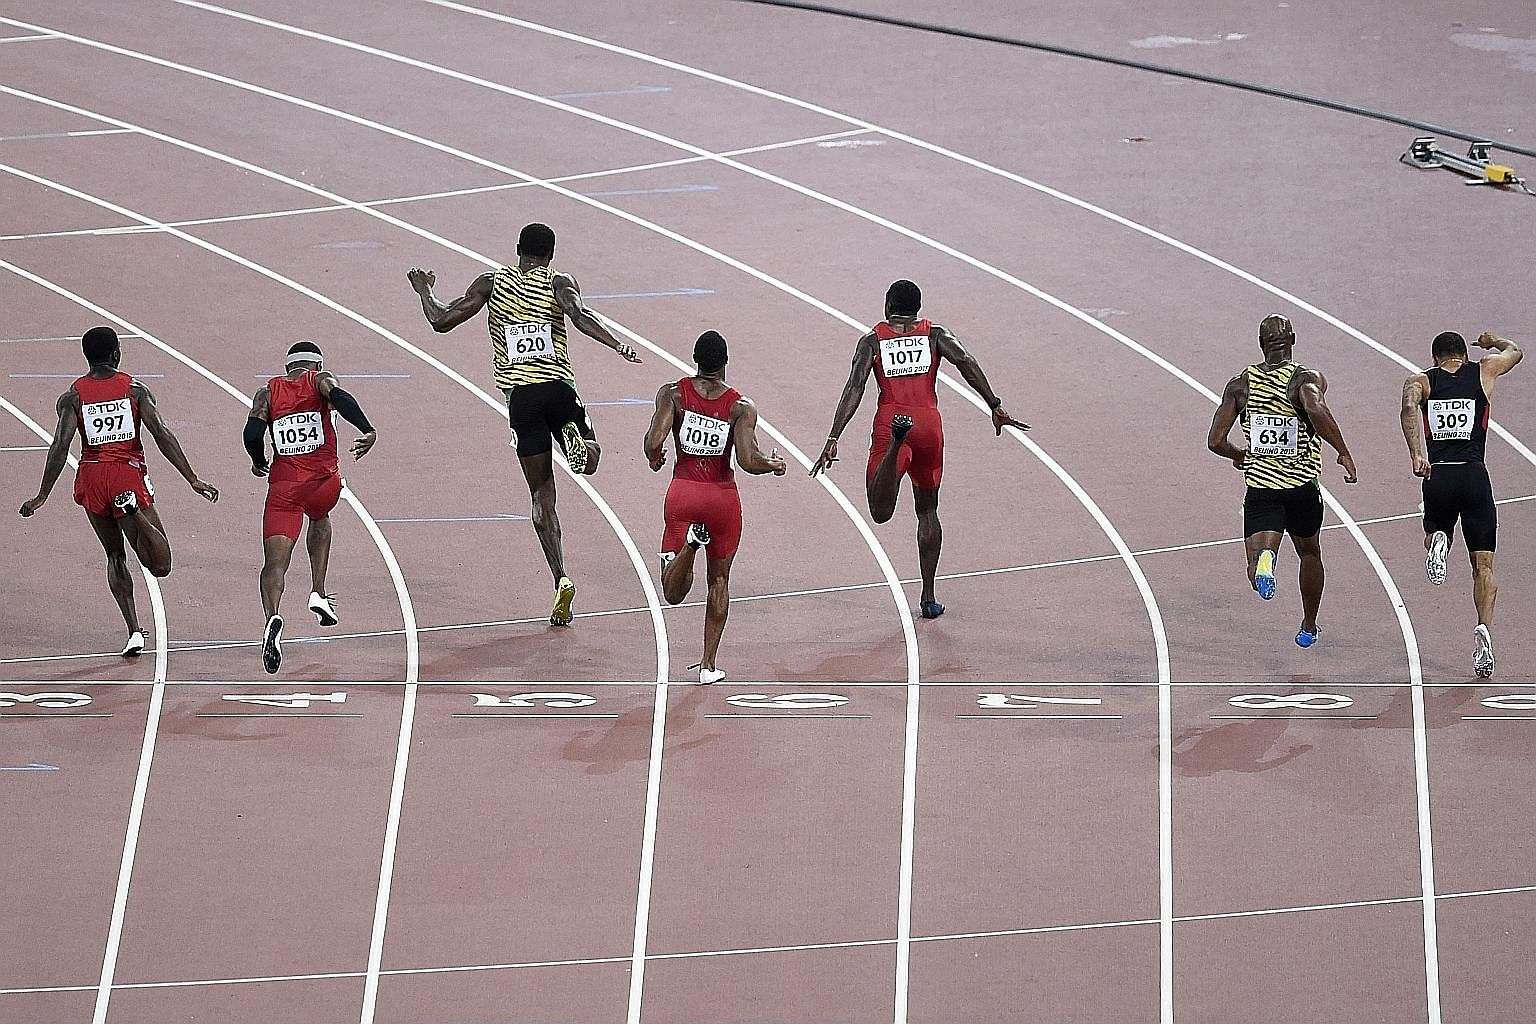 Bolt (centre) often makes a quick impression but it's enough to register in one's mind.